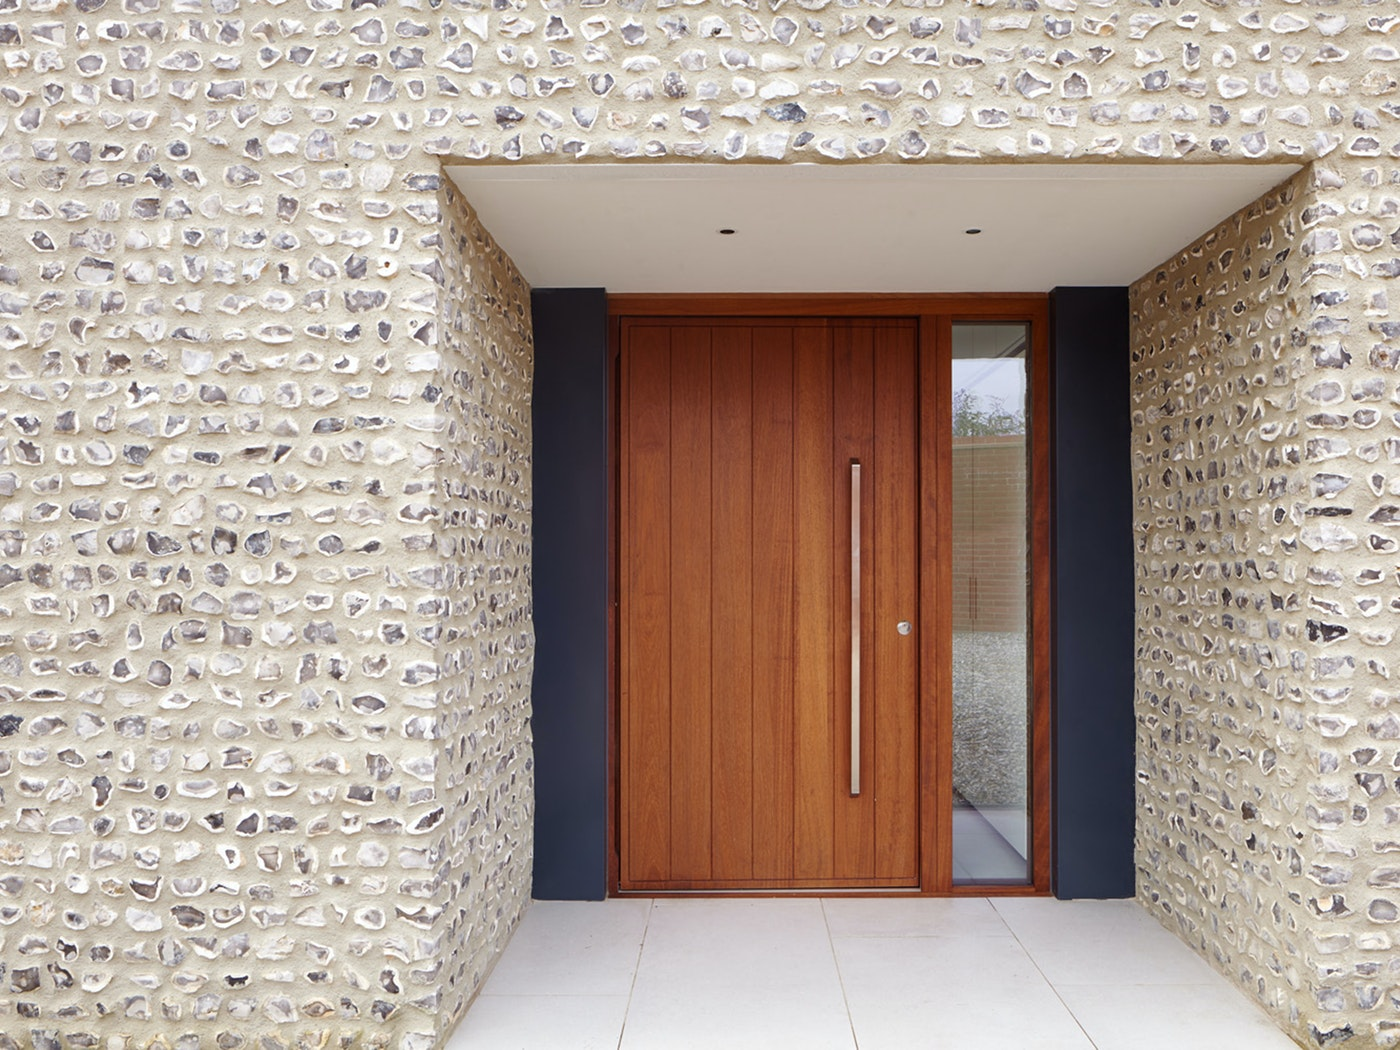 This door is set well back underneath a covered entrance offering great protection